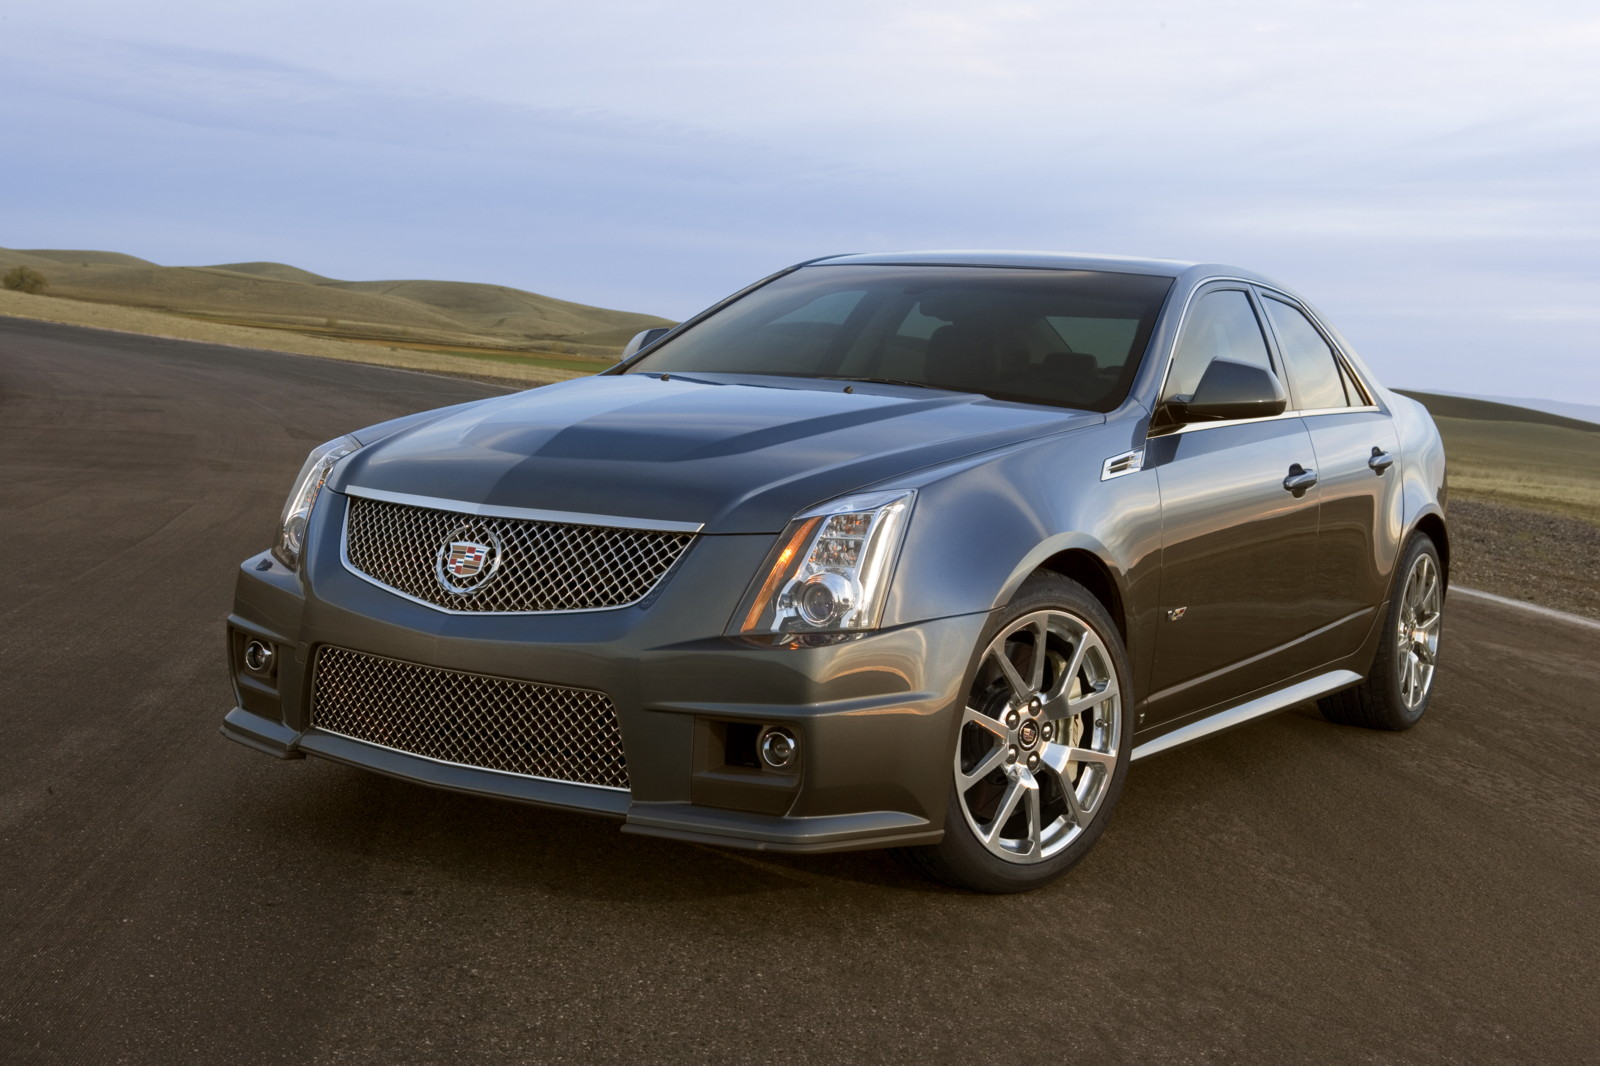 2010 cadillac cts v performance review the car connection. Black Bedroom Furniture Sets. Home Design Ideas